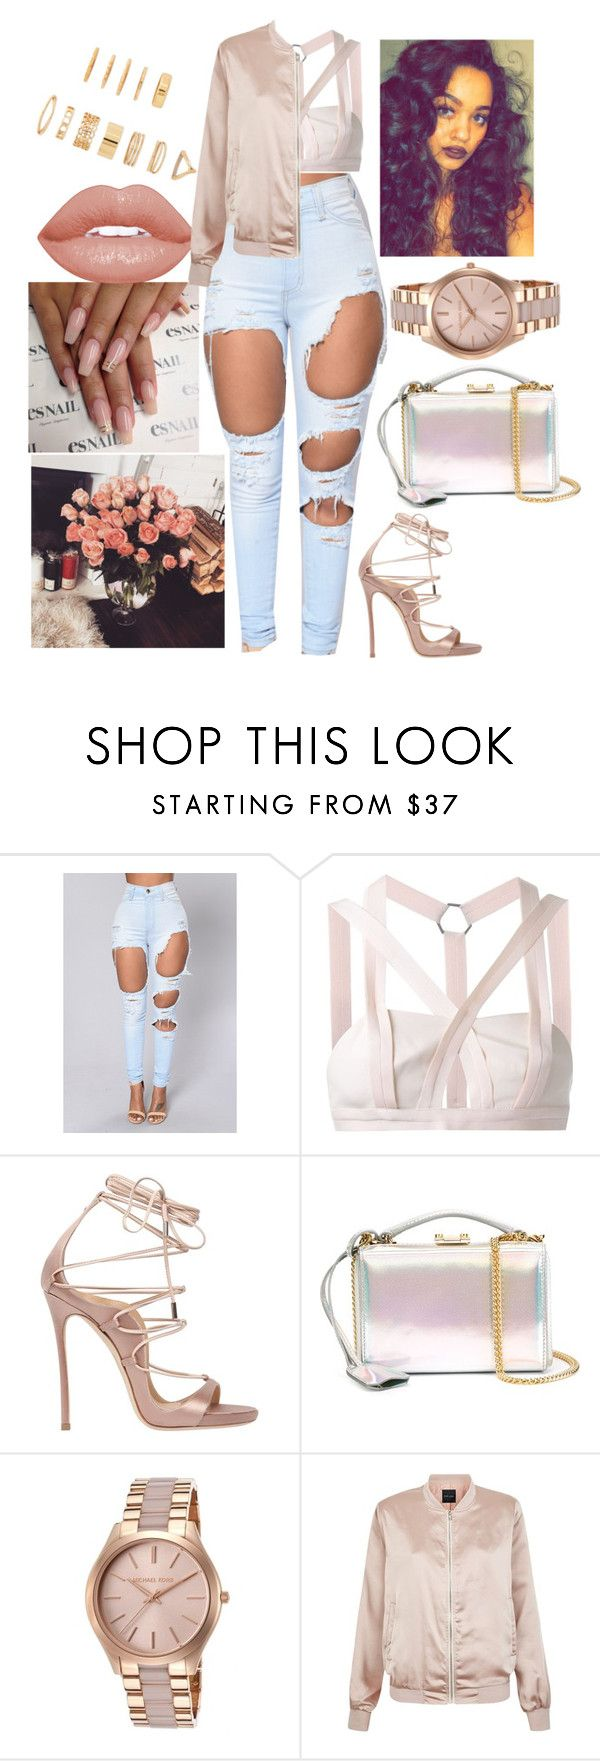 """""""Don't Mind"""" by myfashionandeverydaystyles ❤ liked on Polyvore featuring Dion Lee, Dsquared2, Mark Cross, Michael Kors, Topanga, New Look and Forever 21"""